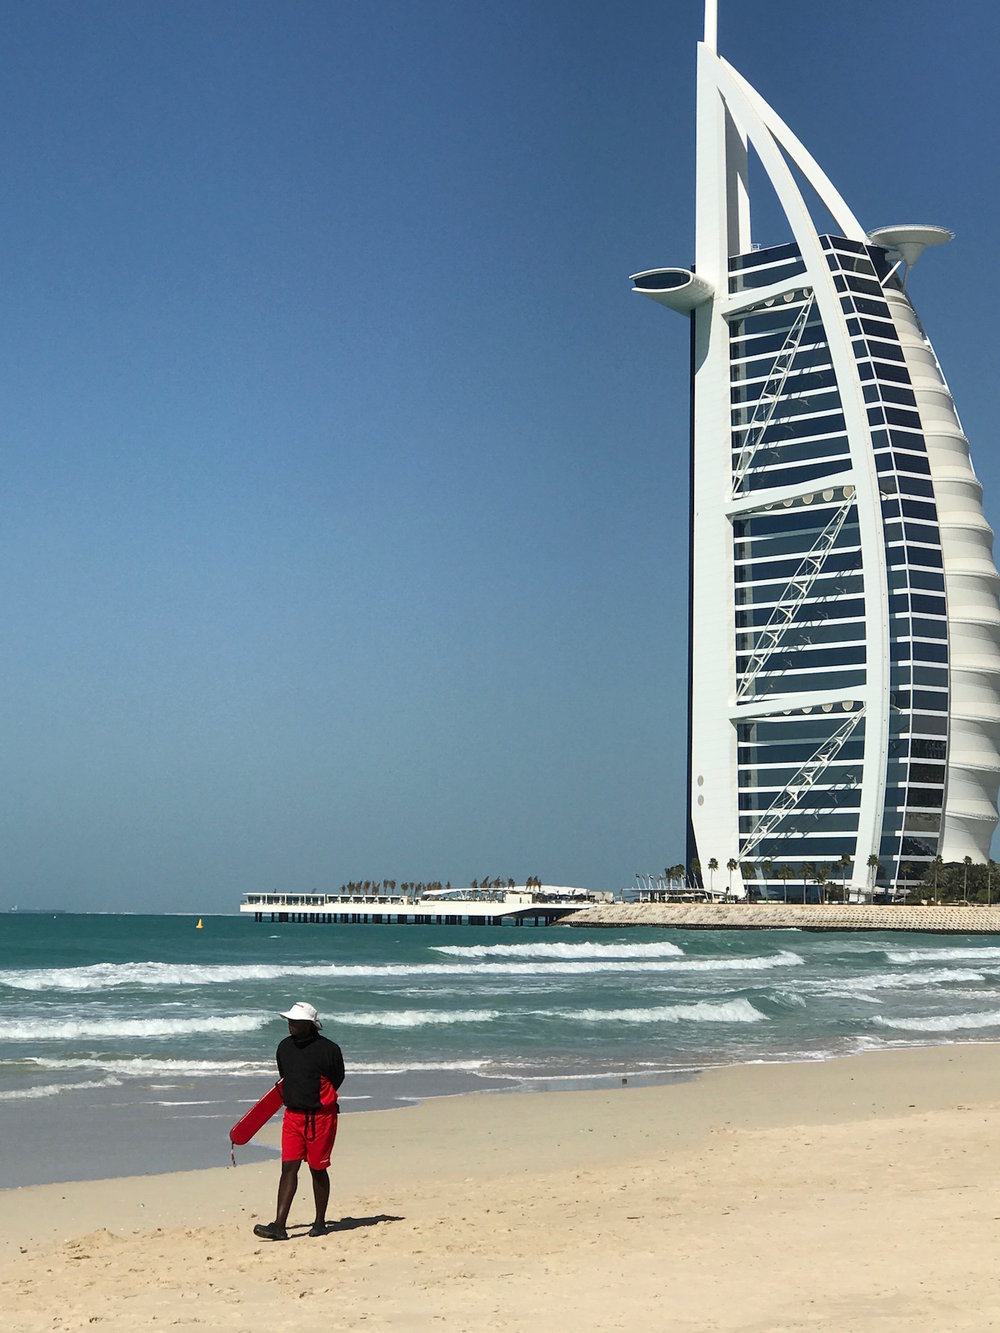 Lifeguard at Jumeirah Beach, Dubai